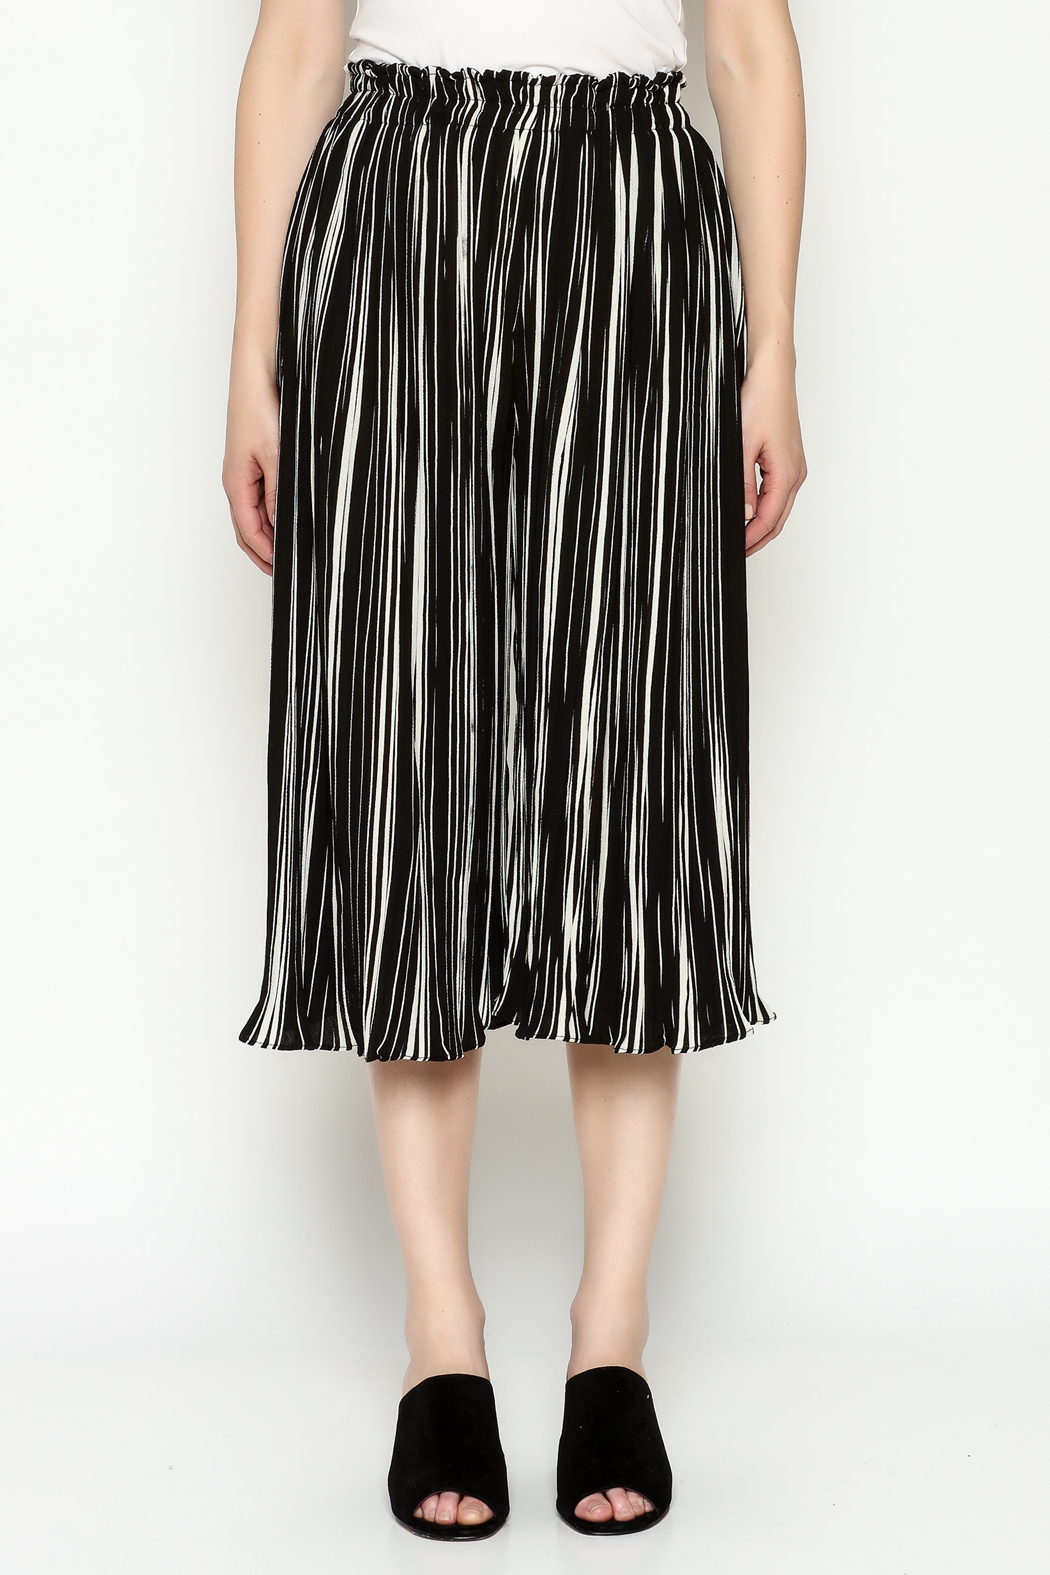 THINK CLOSET Stripe Gaucho Pants - Front Full Image